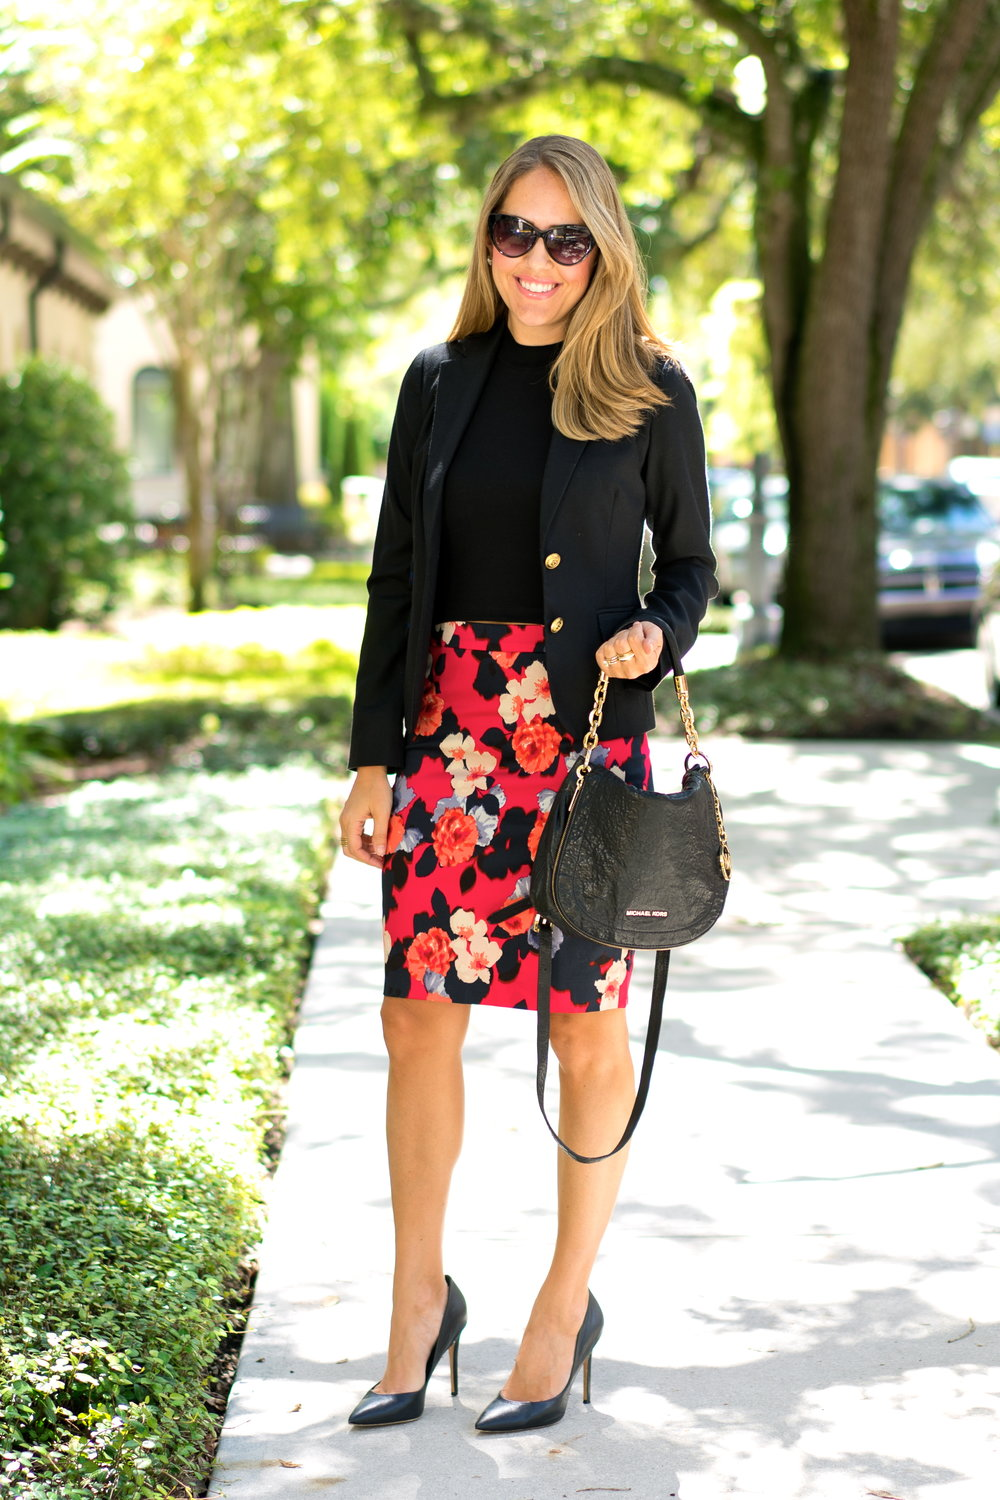 Floral pencil skirt, black blazer